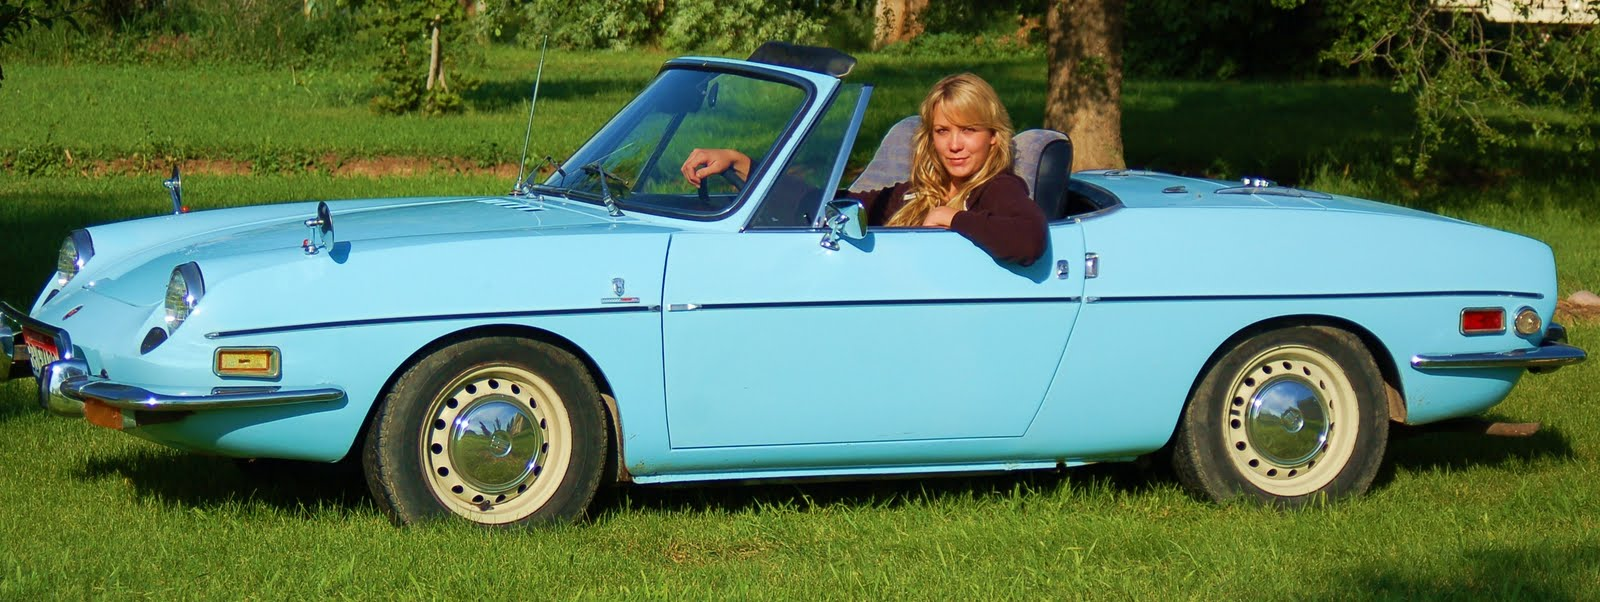 small resolution of i am the second owner luigie was originally purchased off the showroom floor in california back in 1973 and only has 40 400 original miles